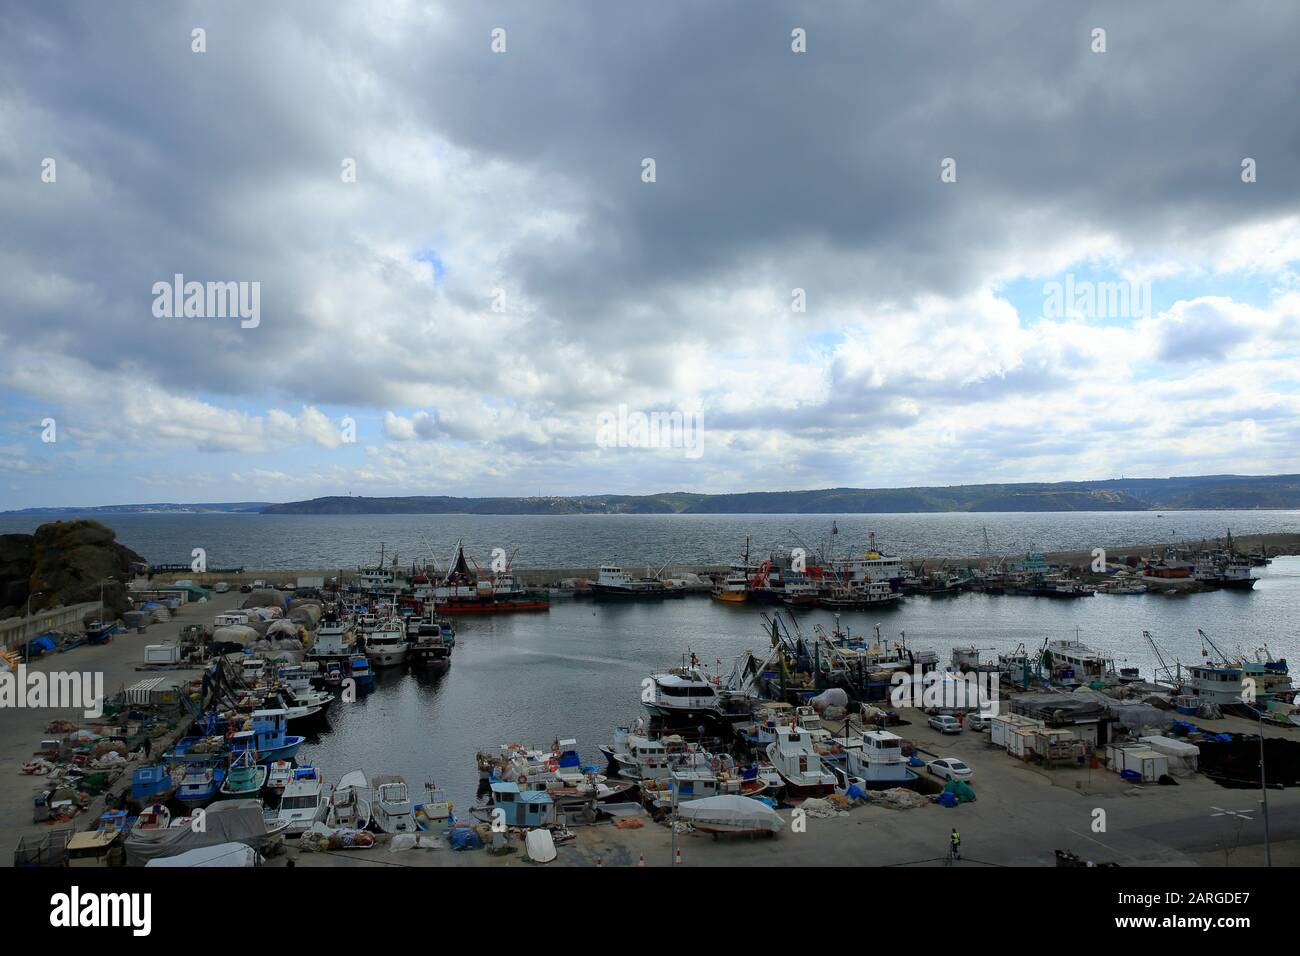 Istanbul, Turkey, November 5, 2018: Rumeli Feneri fishing port. It is located at the entrance to the Bosphorus from the Black Sea. Stock Photo